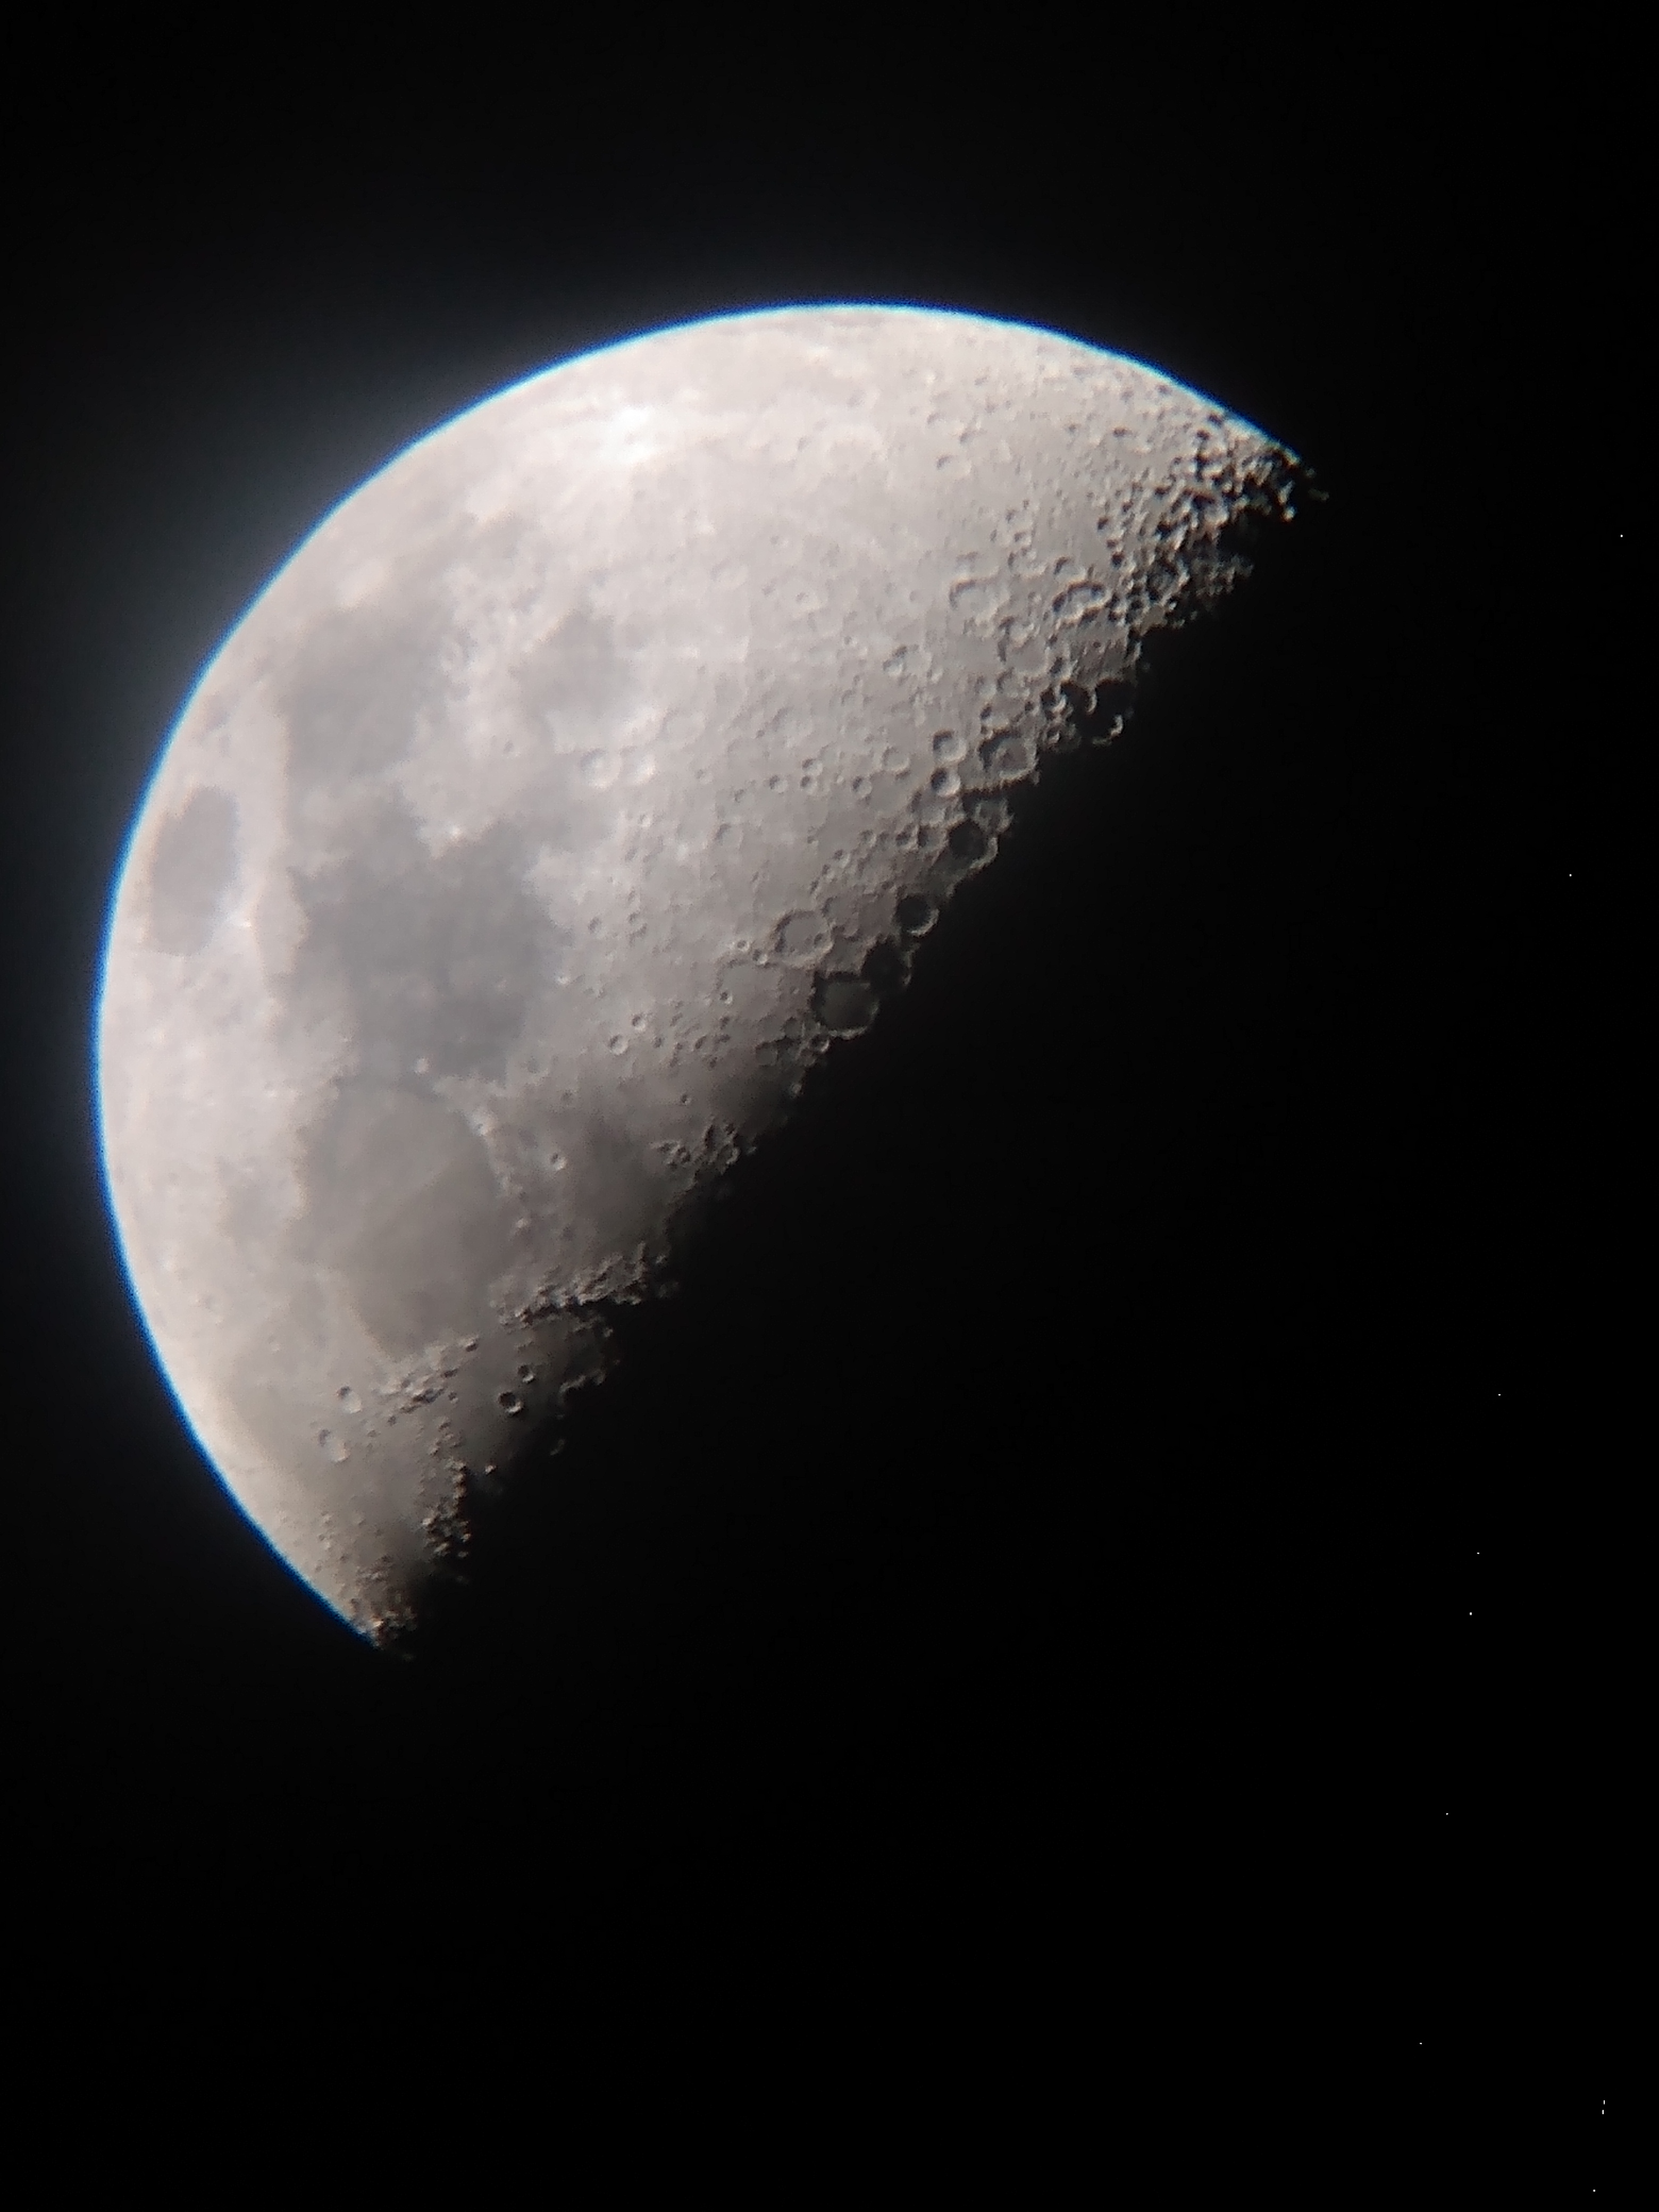 The moon photographed through a telescope known as afocal photography